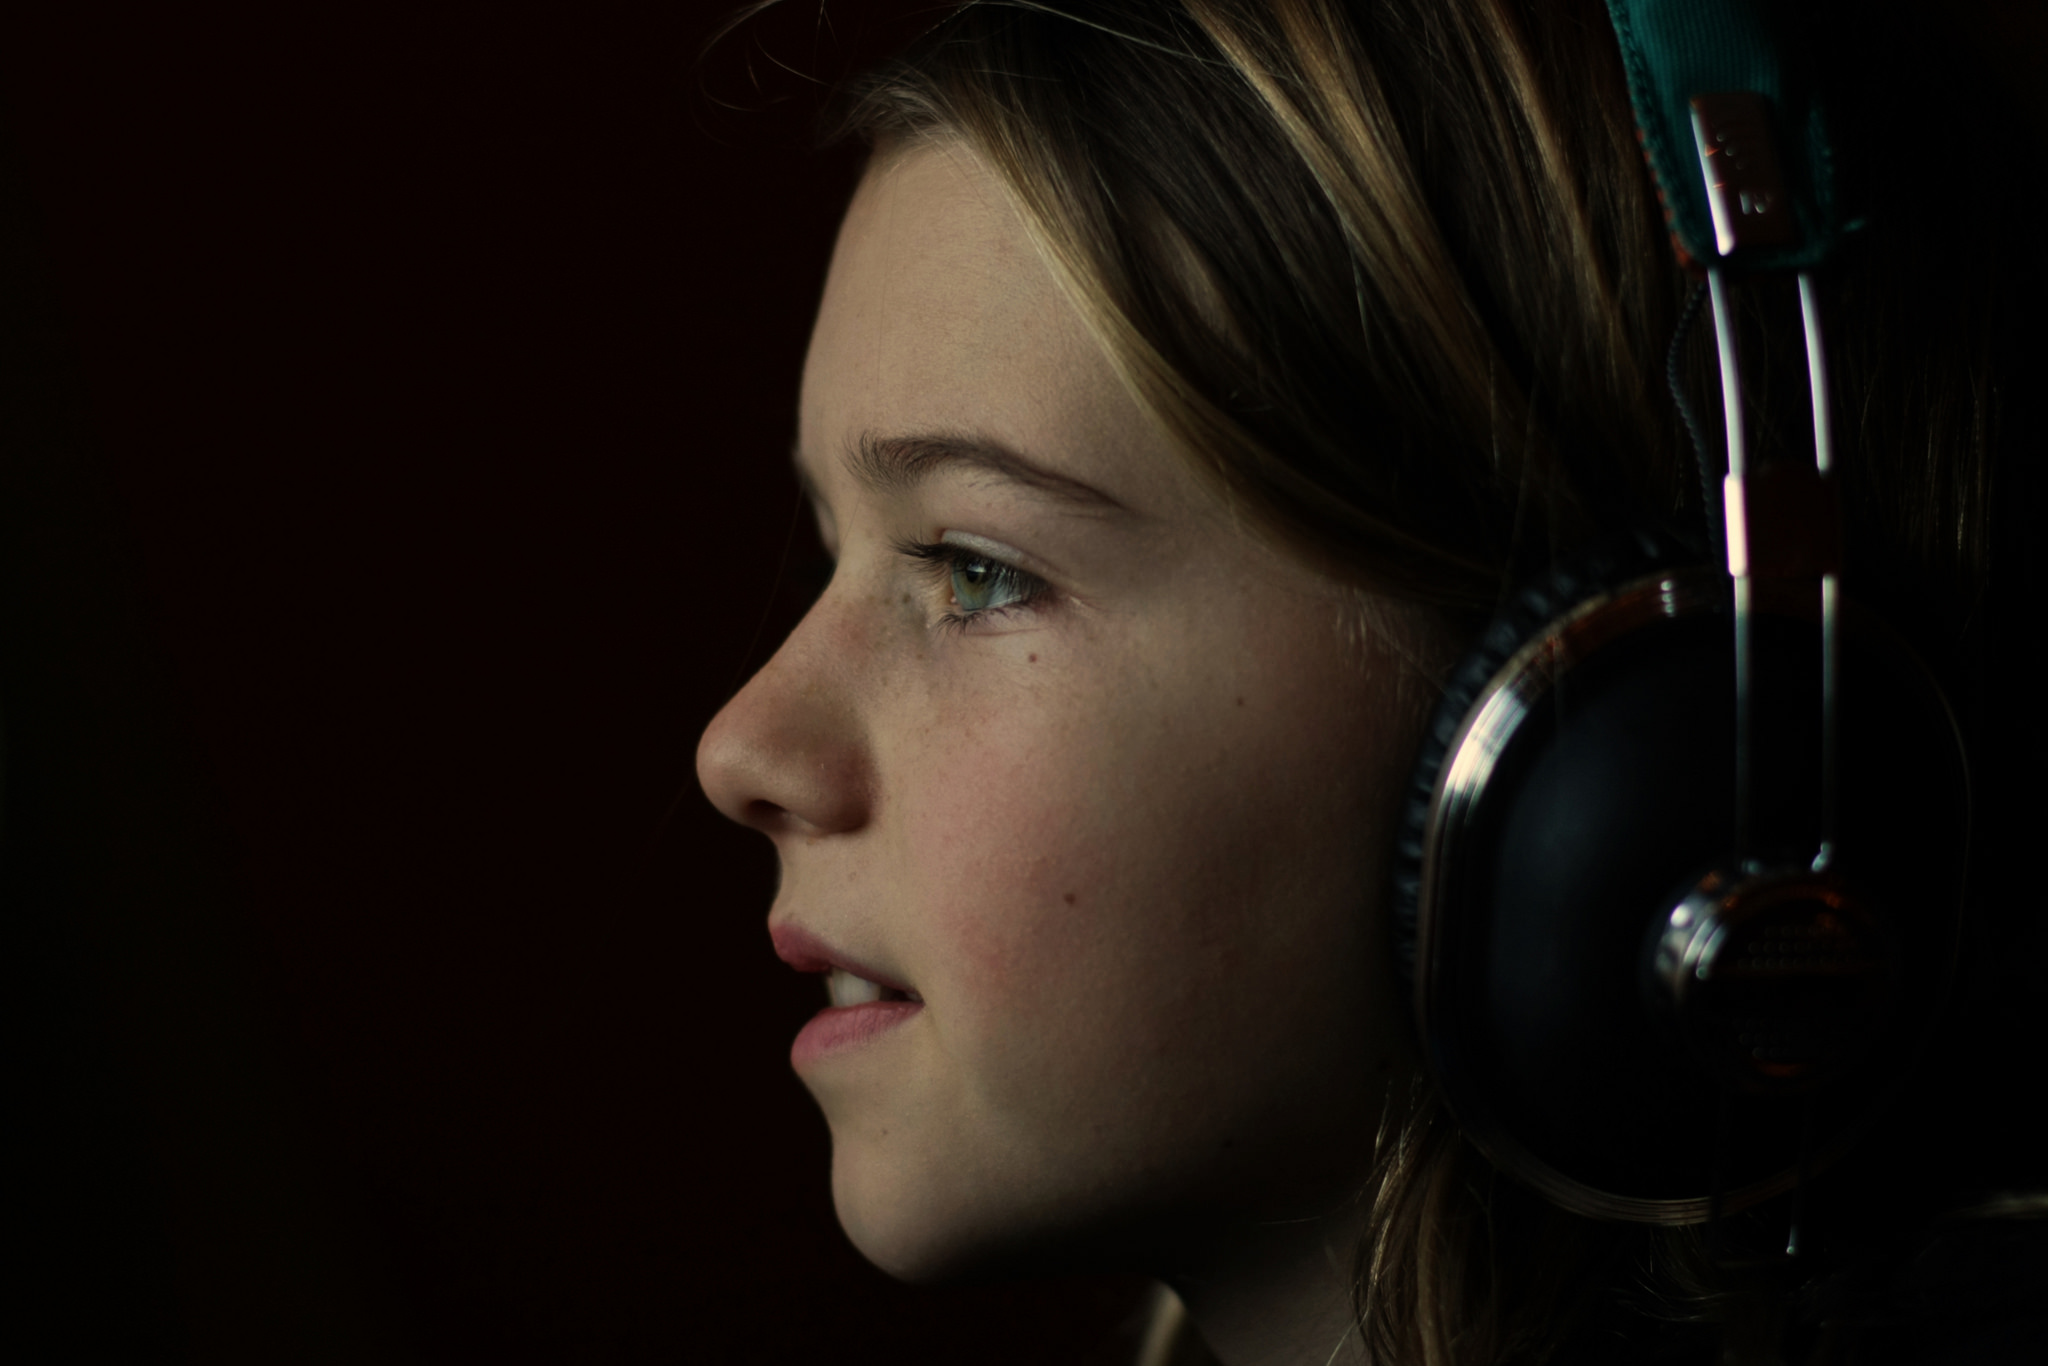 profile of girl listening to headphones